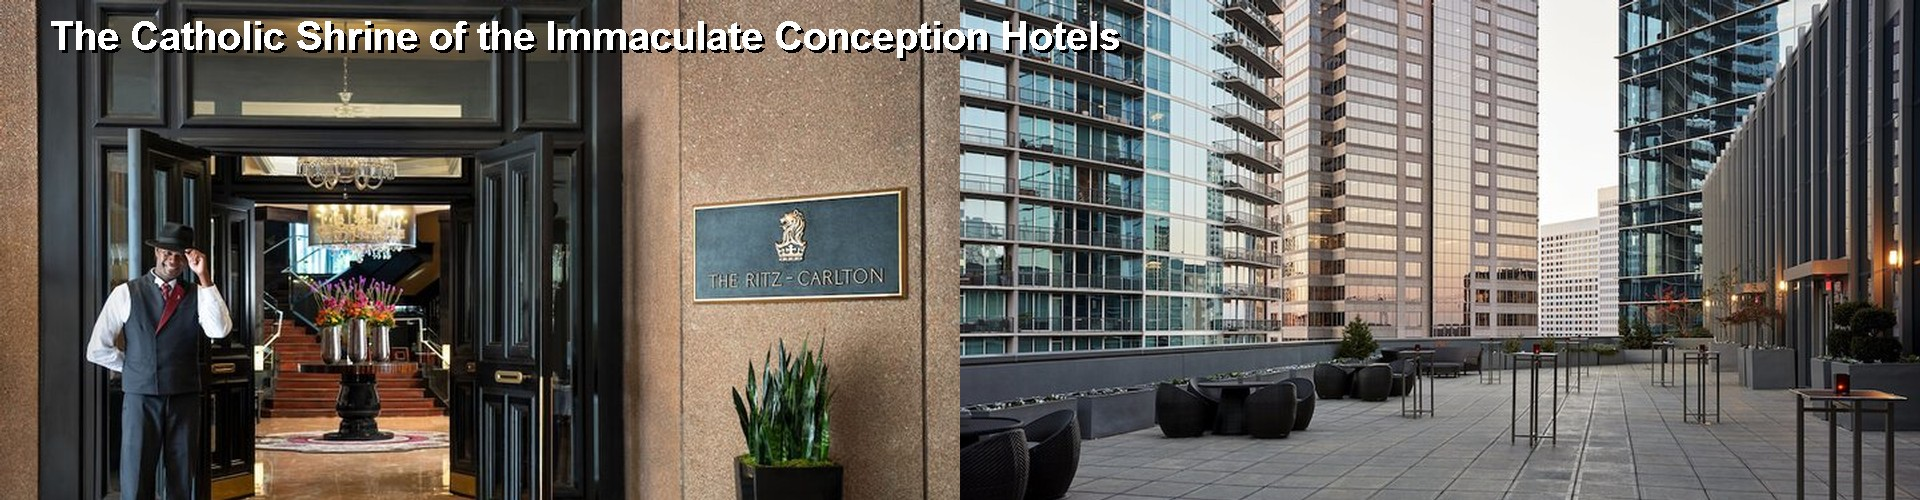 5 Best Hotels near The Catholic Shrine of the Immaculate Conception